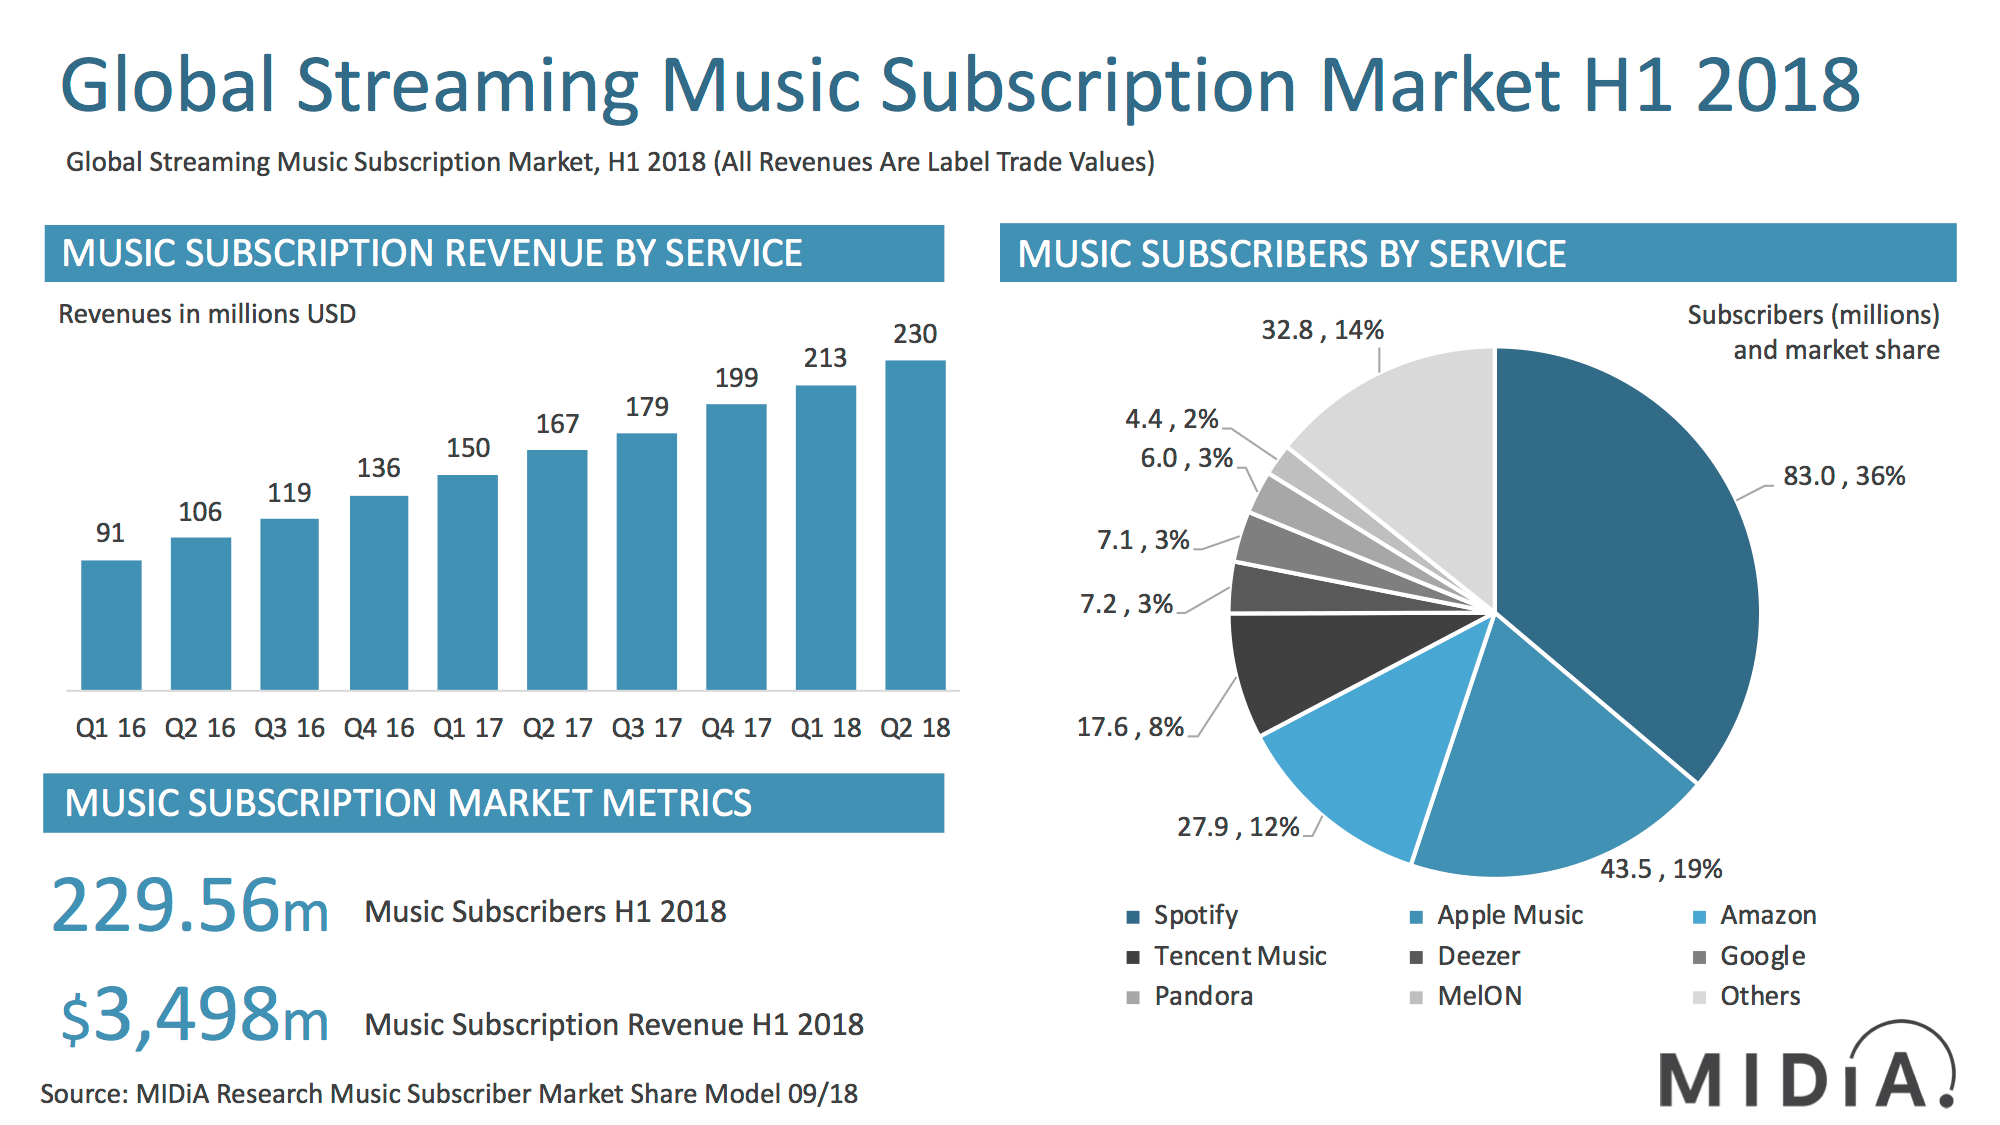 Global music streaming market leaders